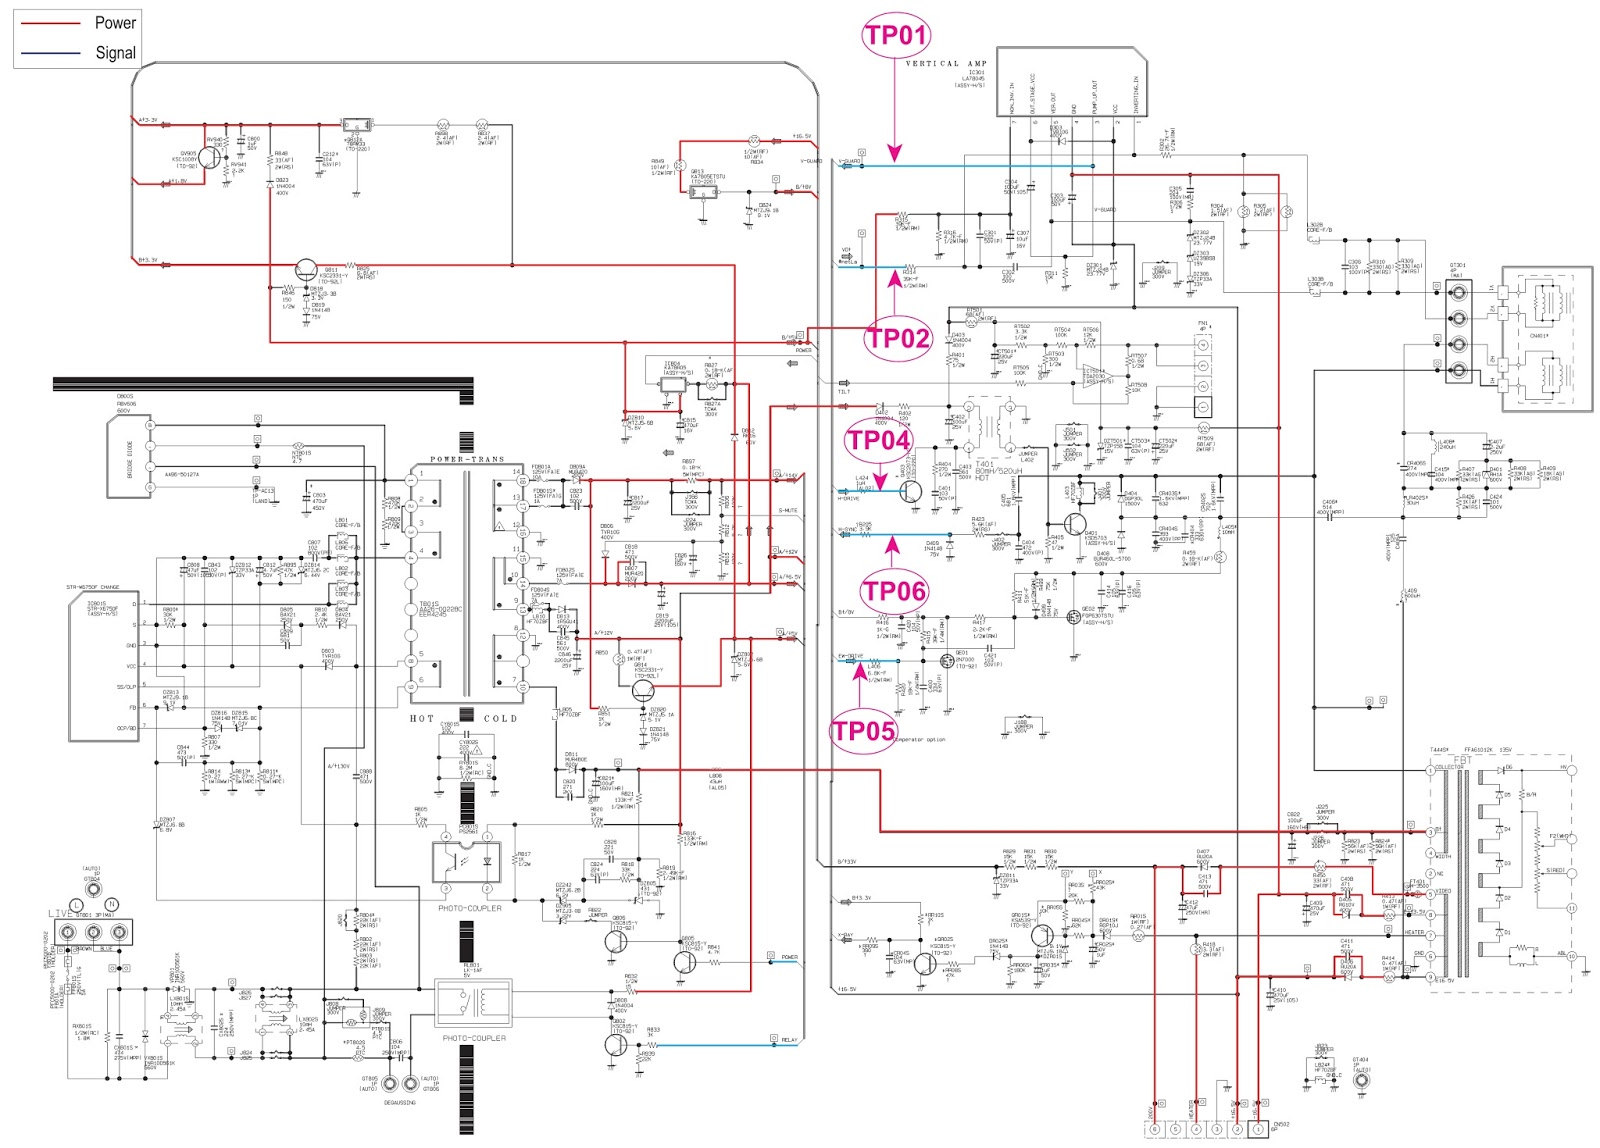 samsung cl29x50 power supply smps schematic circuit diagram rh electronicshelponline blogspot com samsung schematic diagram tv samsung schematic diagram free download